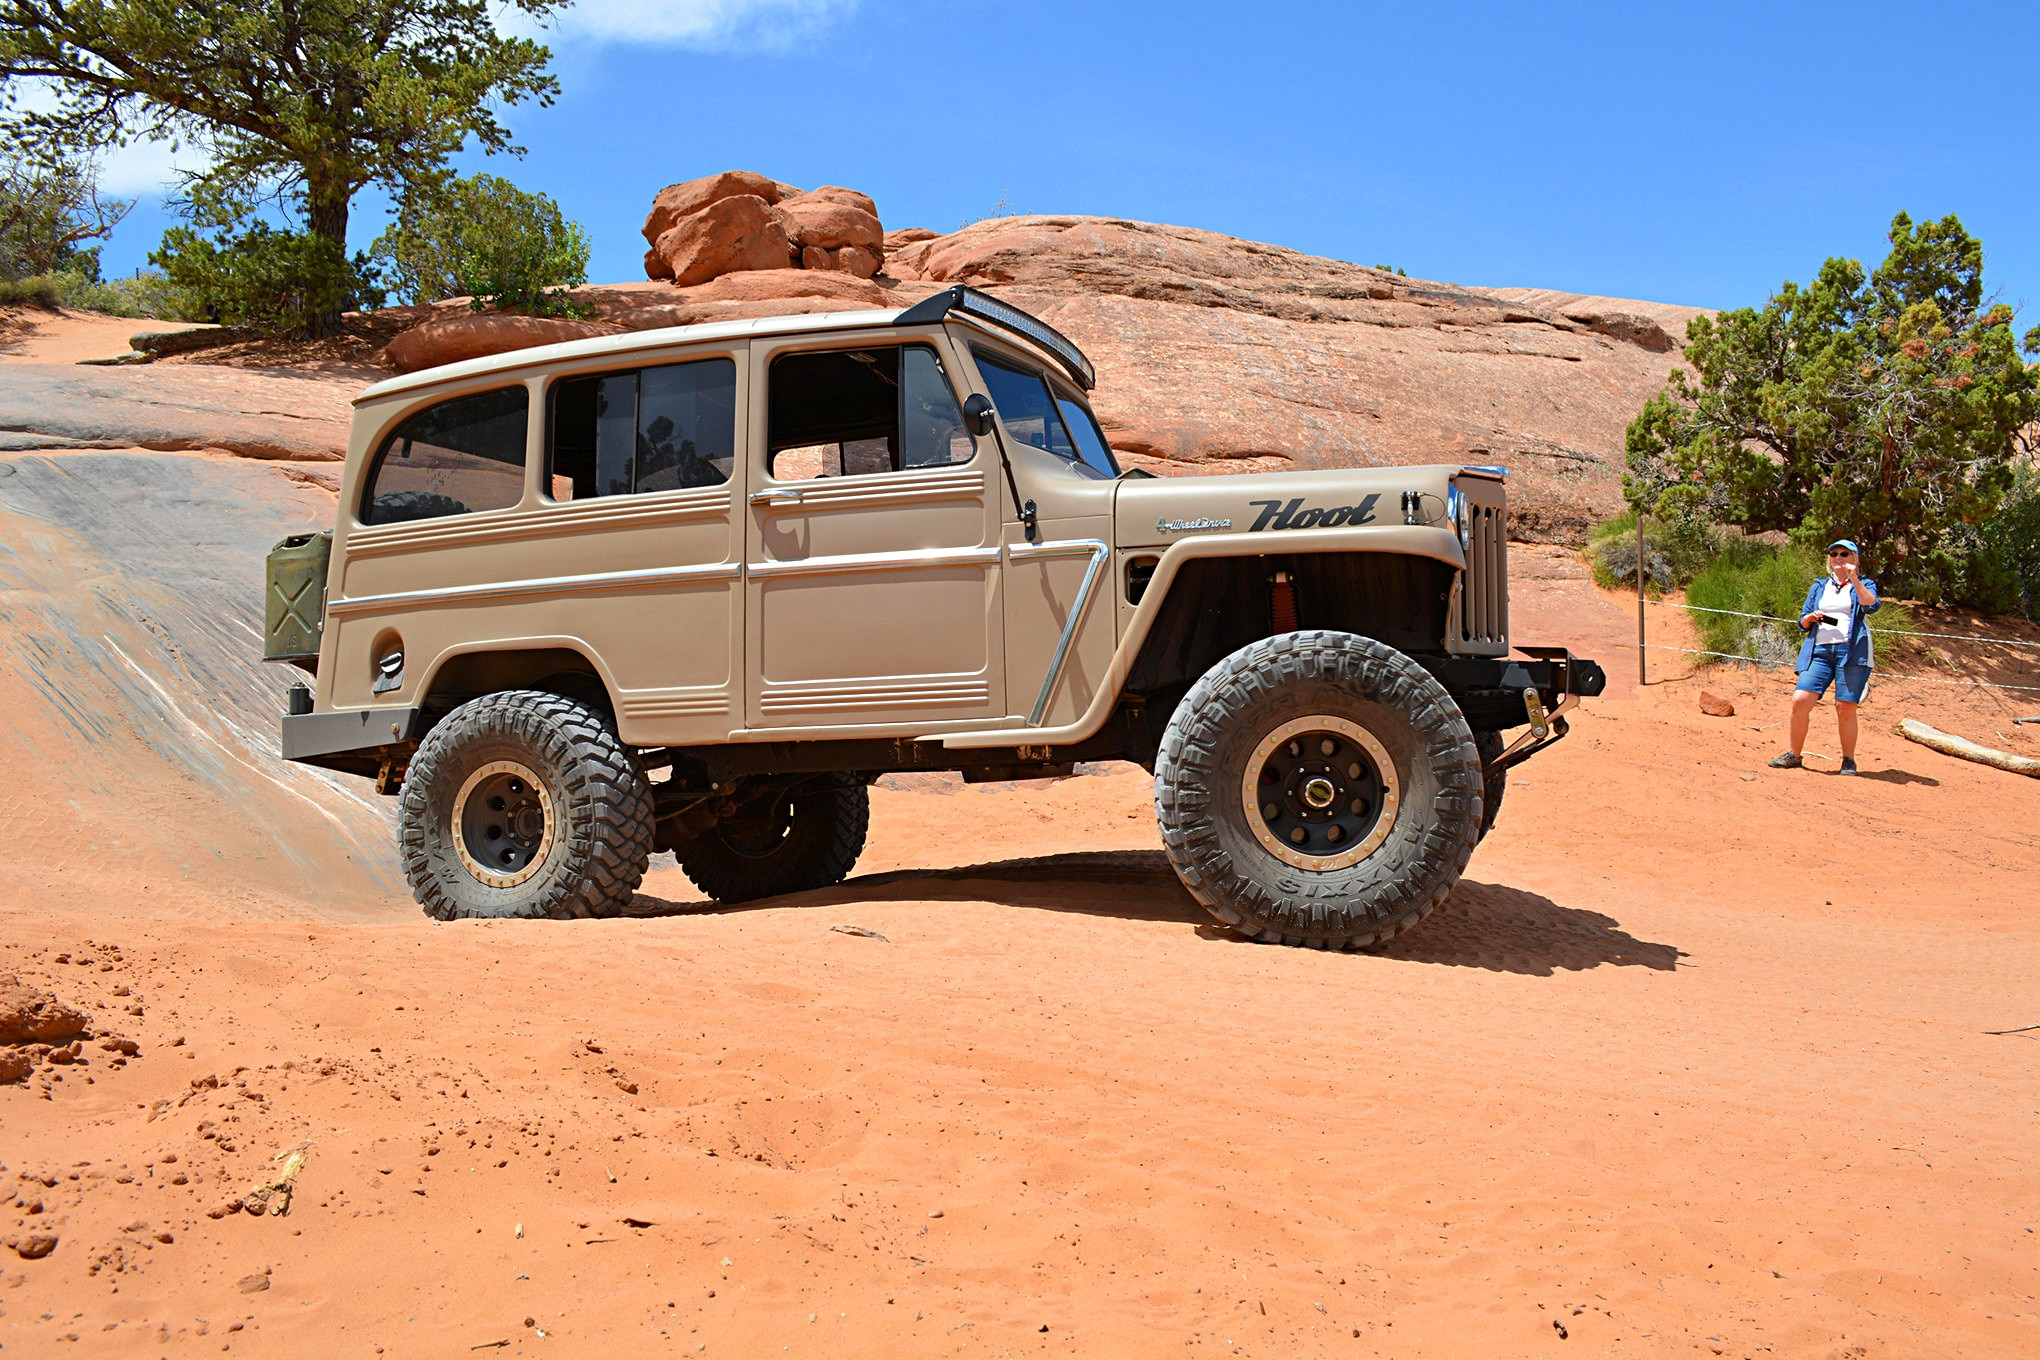 060 willys rally moab 2018 gallery.JPG